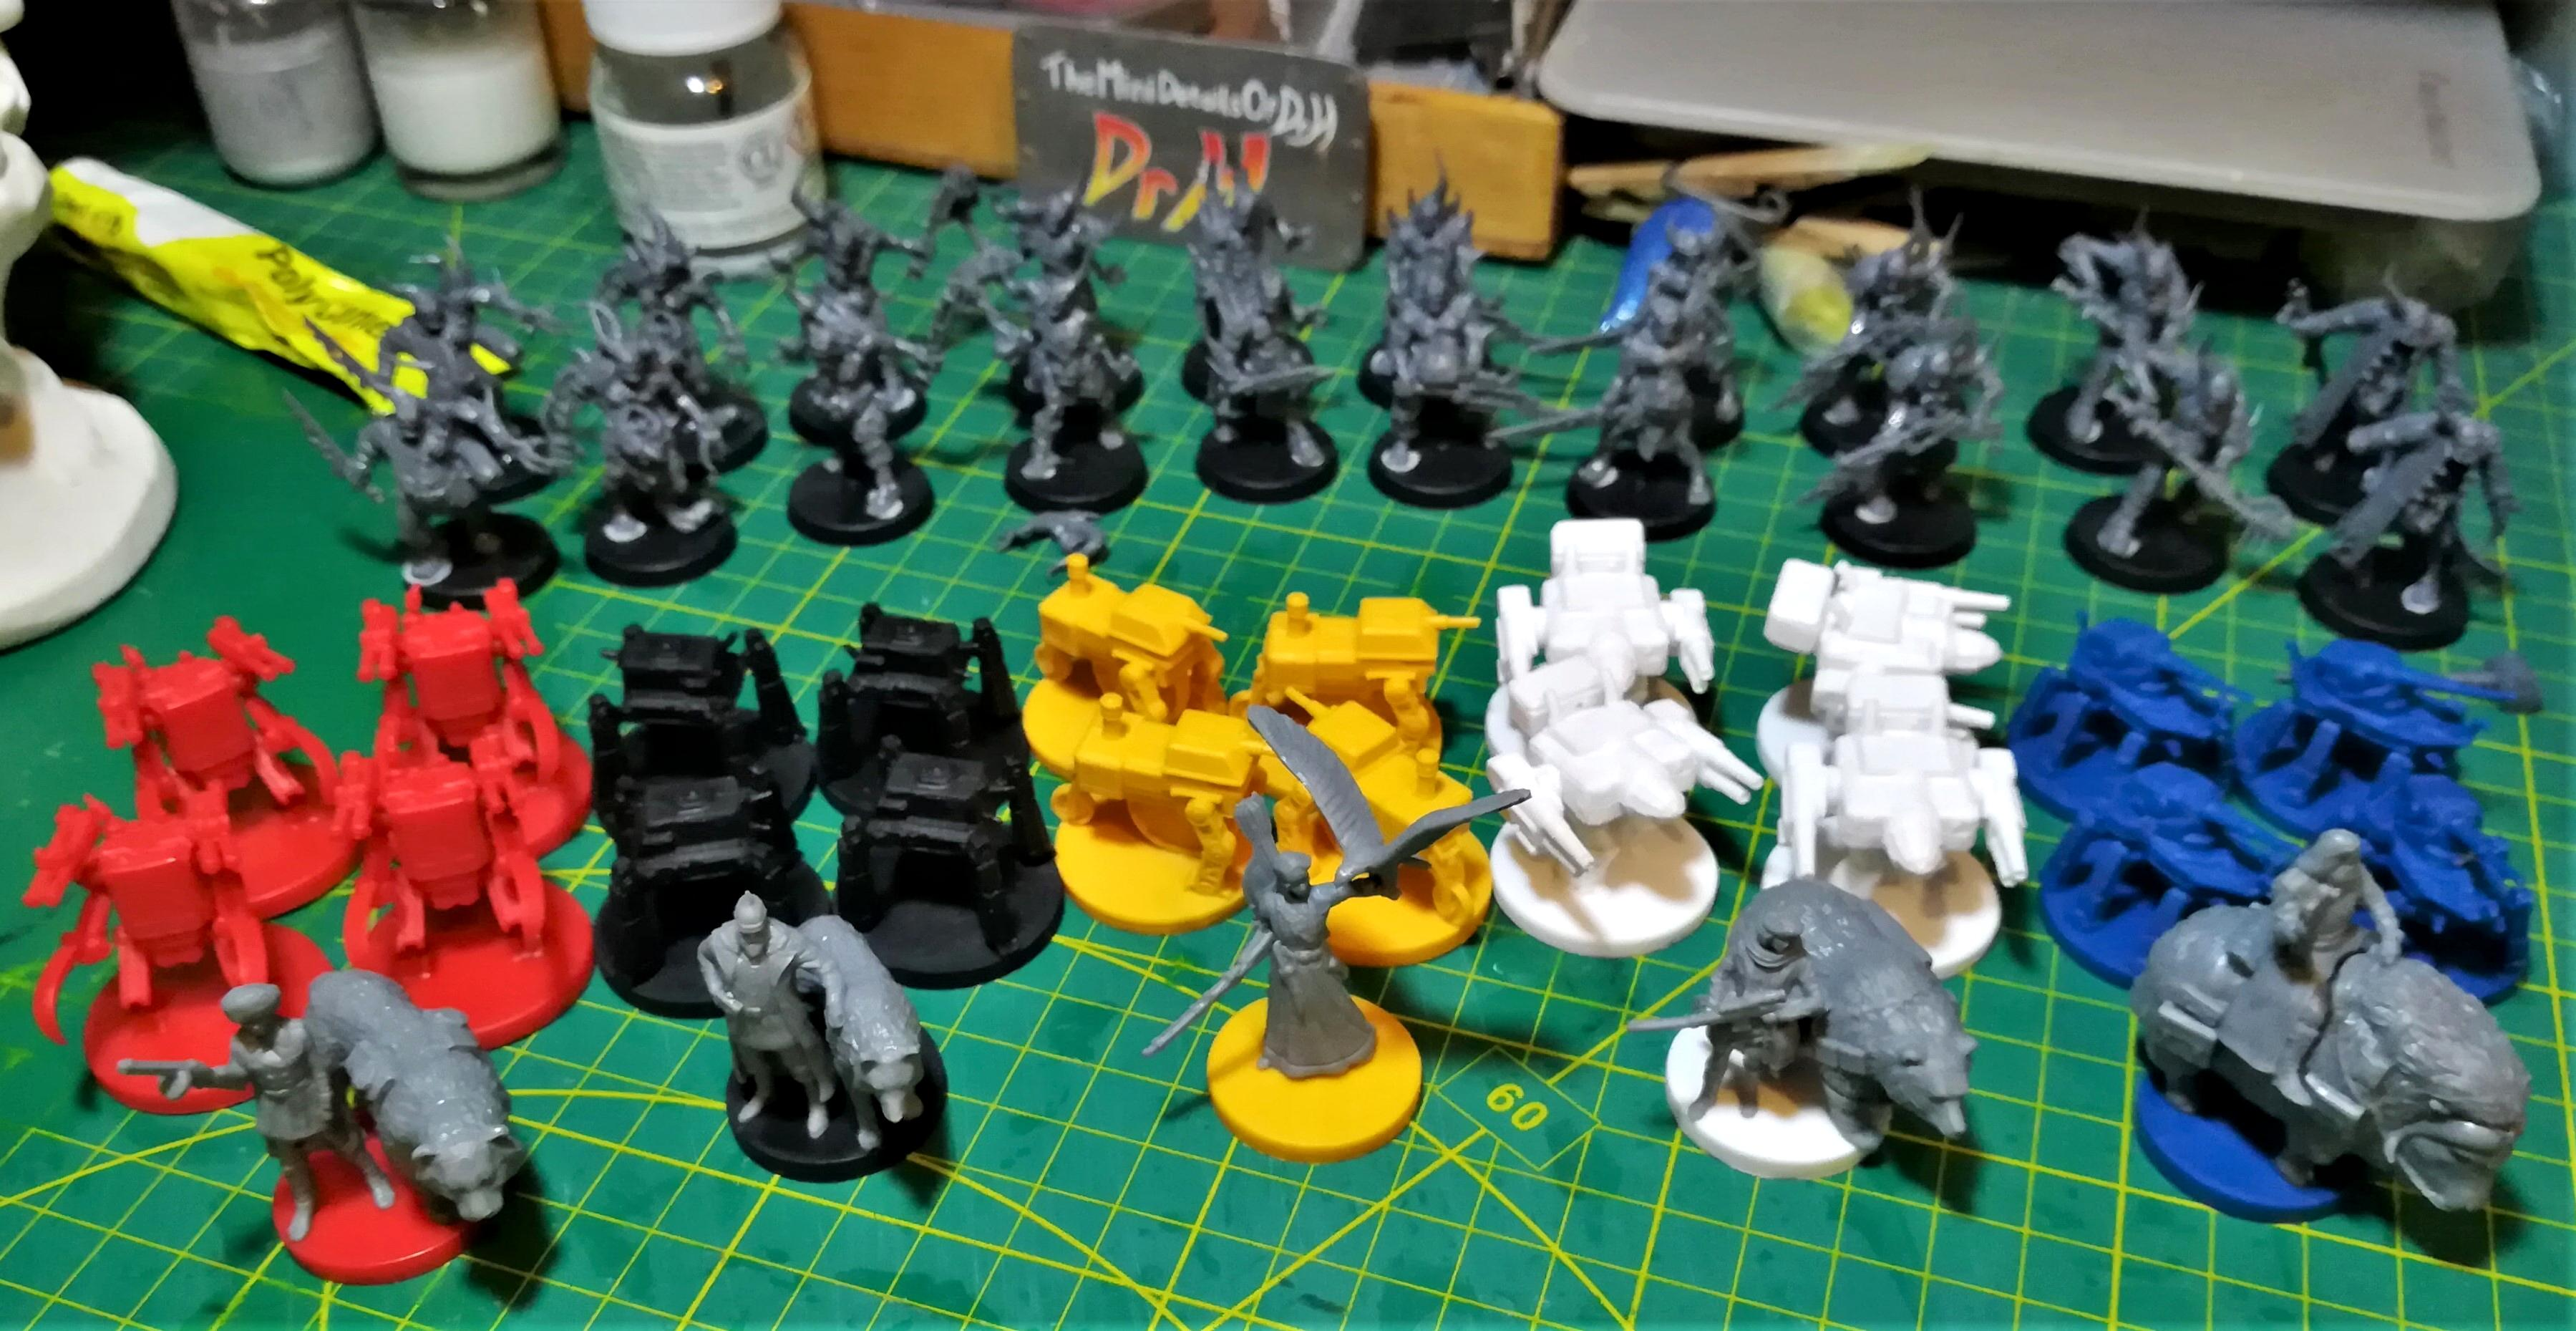 Next projects on the table; pox walkers and Scythe figures